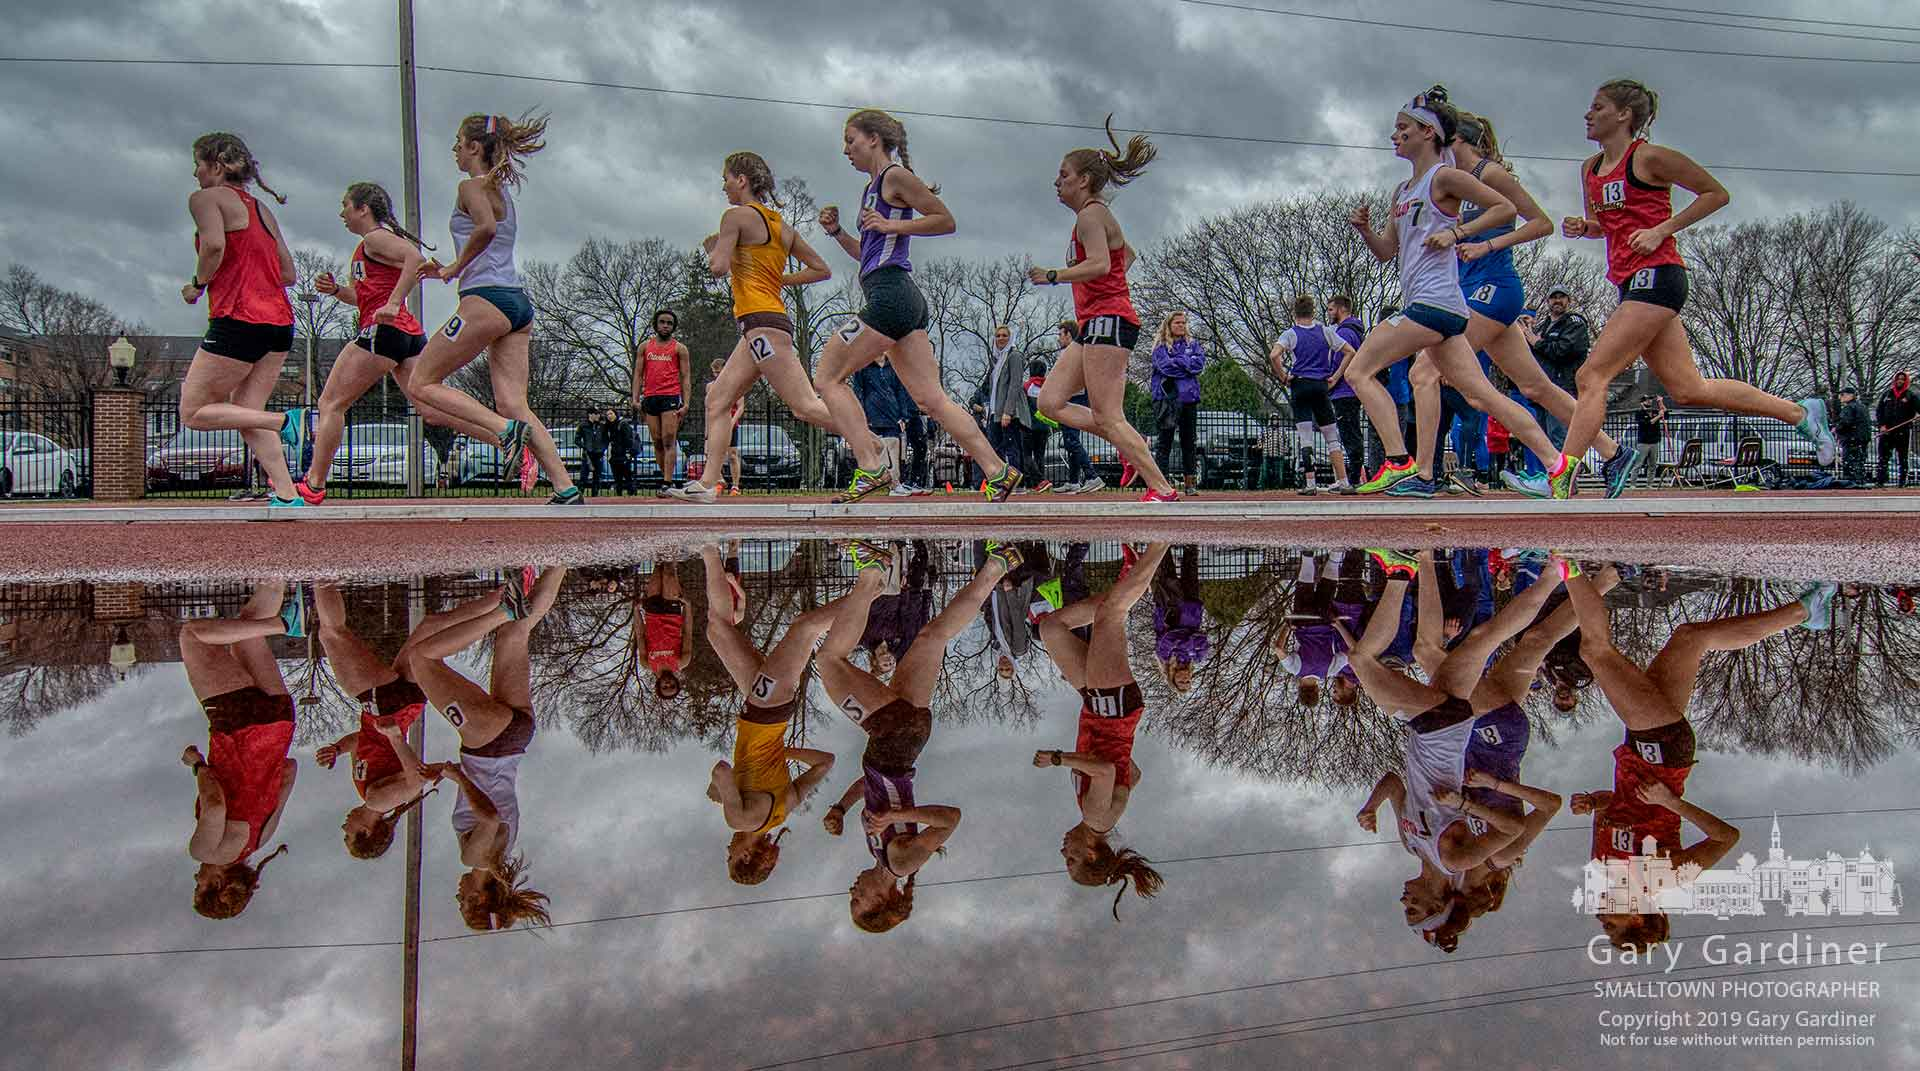 Runners round the first turn in the 5K at the Otterbein April Fools Invitational where runners navigated their way through track and field events with rain during parts of the afternoon. My Final Photo for March 30, 2019.